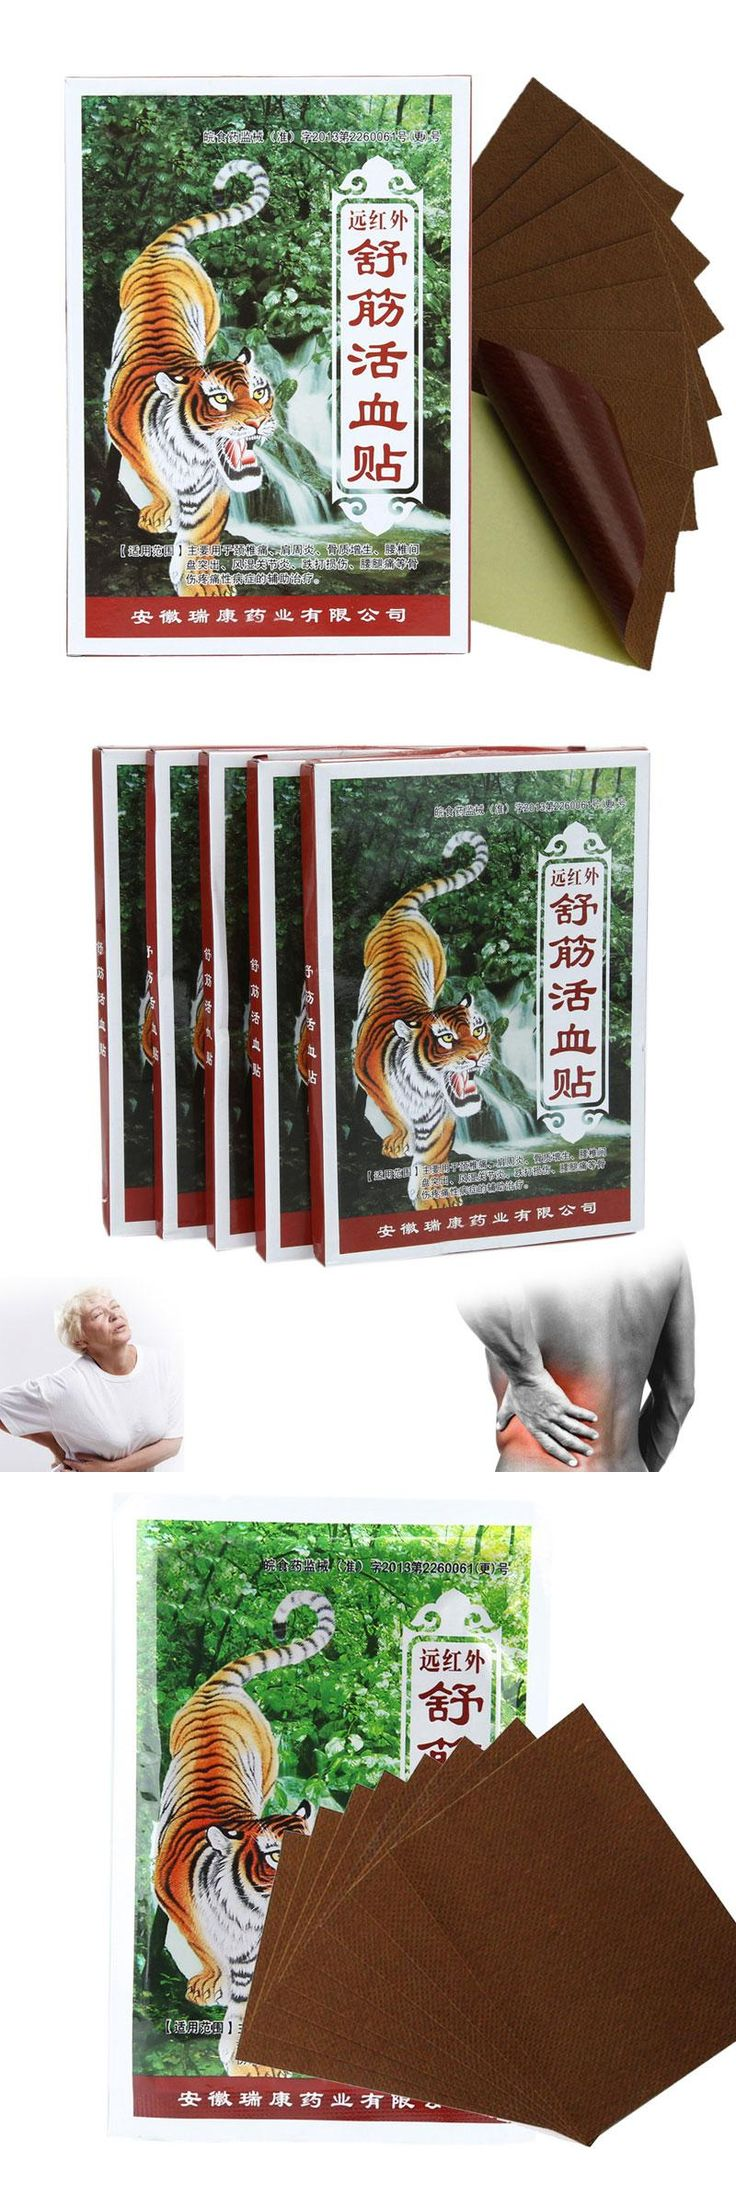 [Visit to Buy] 40Pcs Chinese Herbal Medicine Joint Pain Tiger Balm Arthritis Rheumatism Treatment Massage Therapy Plasters Adhesive Health care #Advertisement